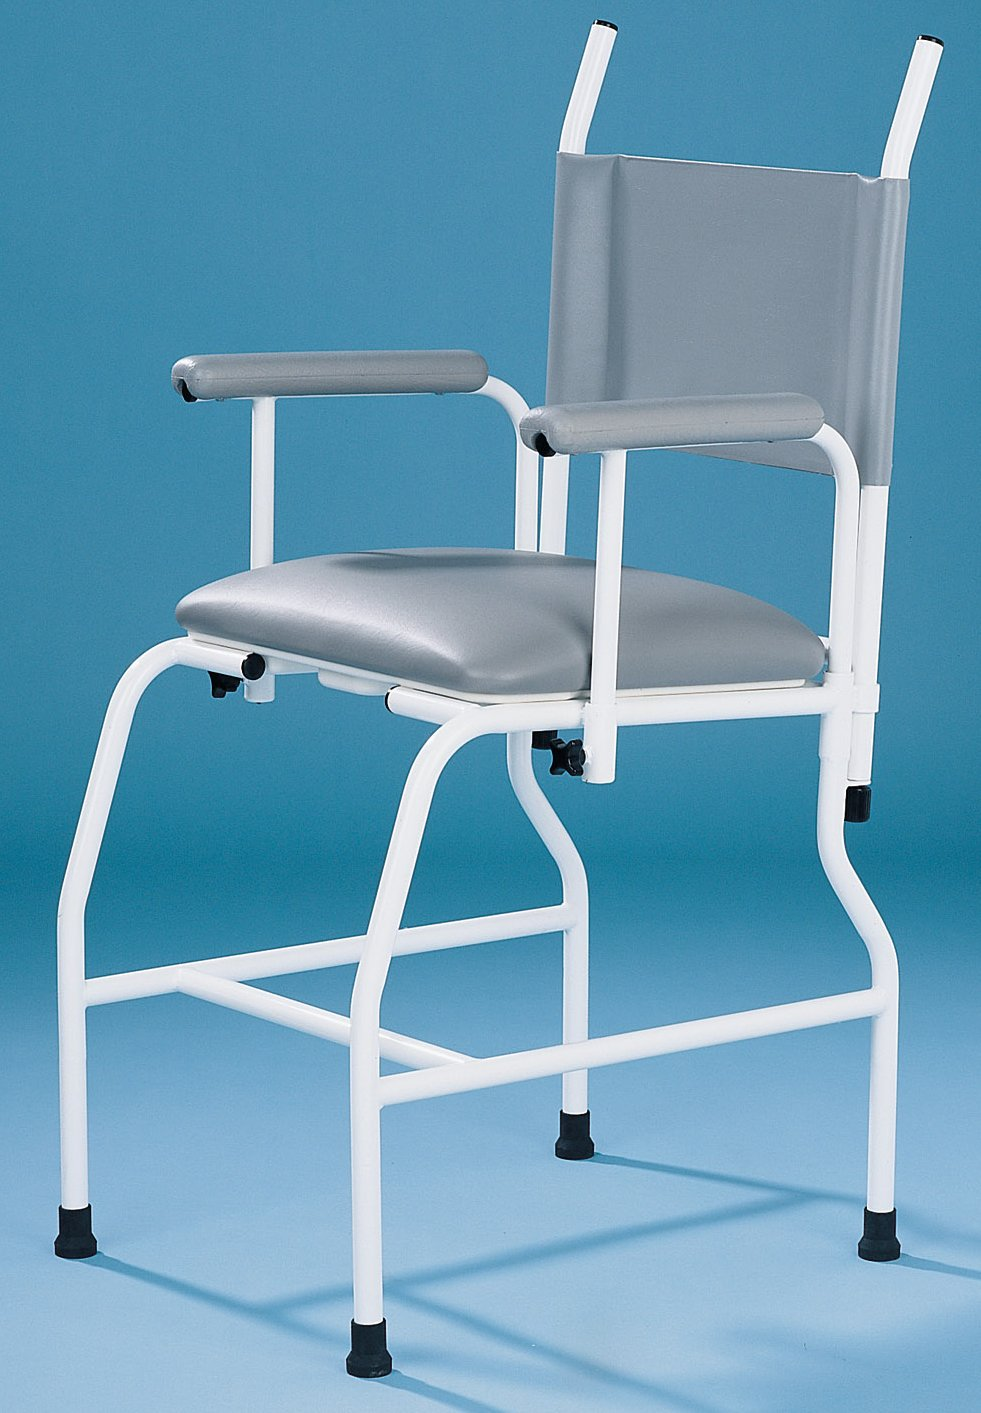 Freeway Shower Chair T40 | Expert Event